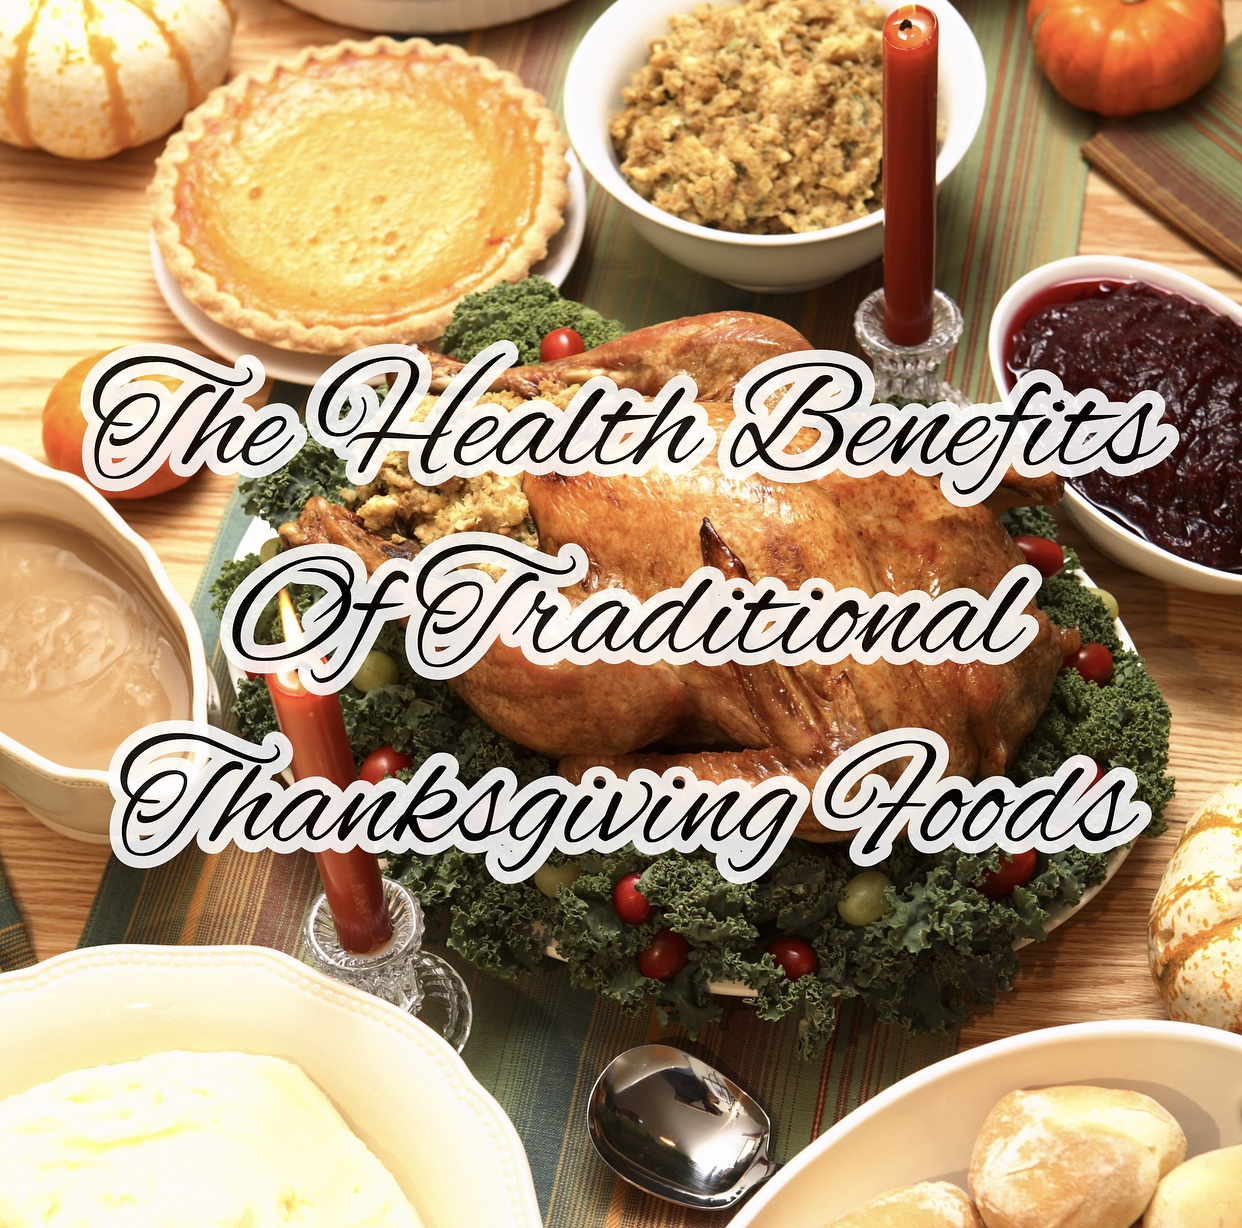 The Health Benefits Of A Traditional Thanksgiving Meal